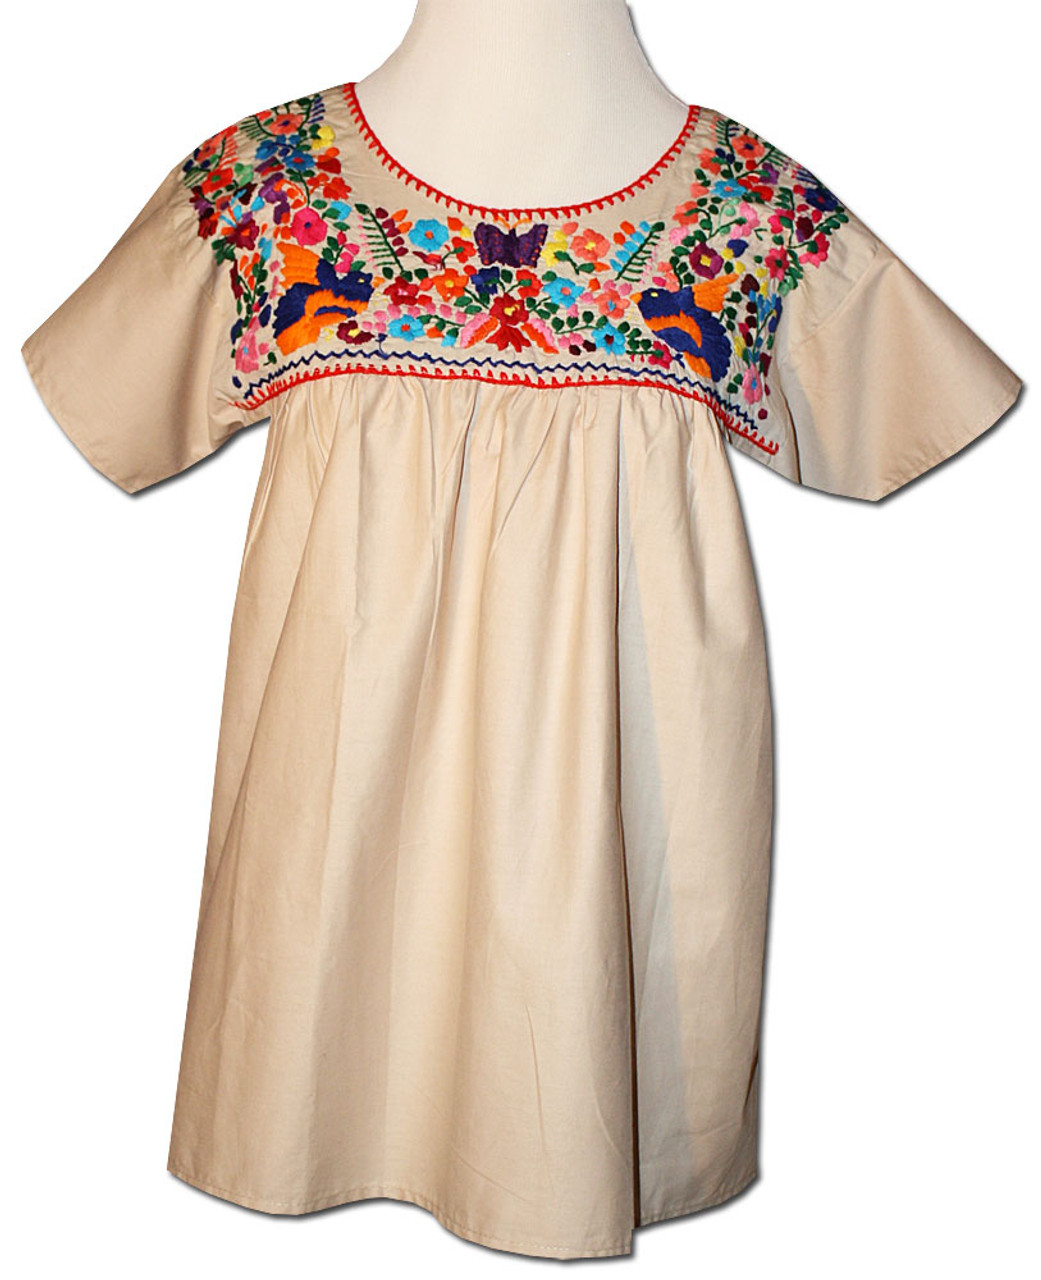 d1ce033fa5fbae Mexican Puebla Women s Embroidered Blouse Khaki XL - My Mercado Mexican  Imports